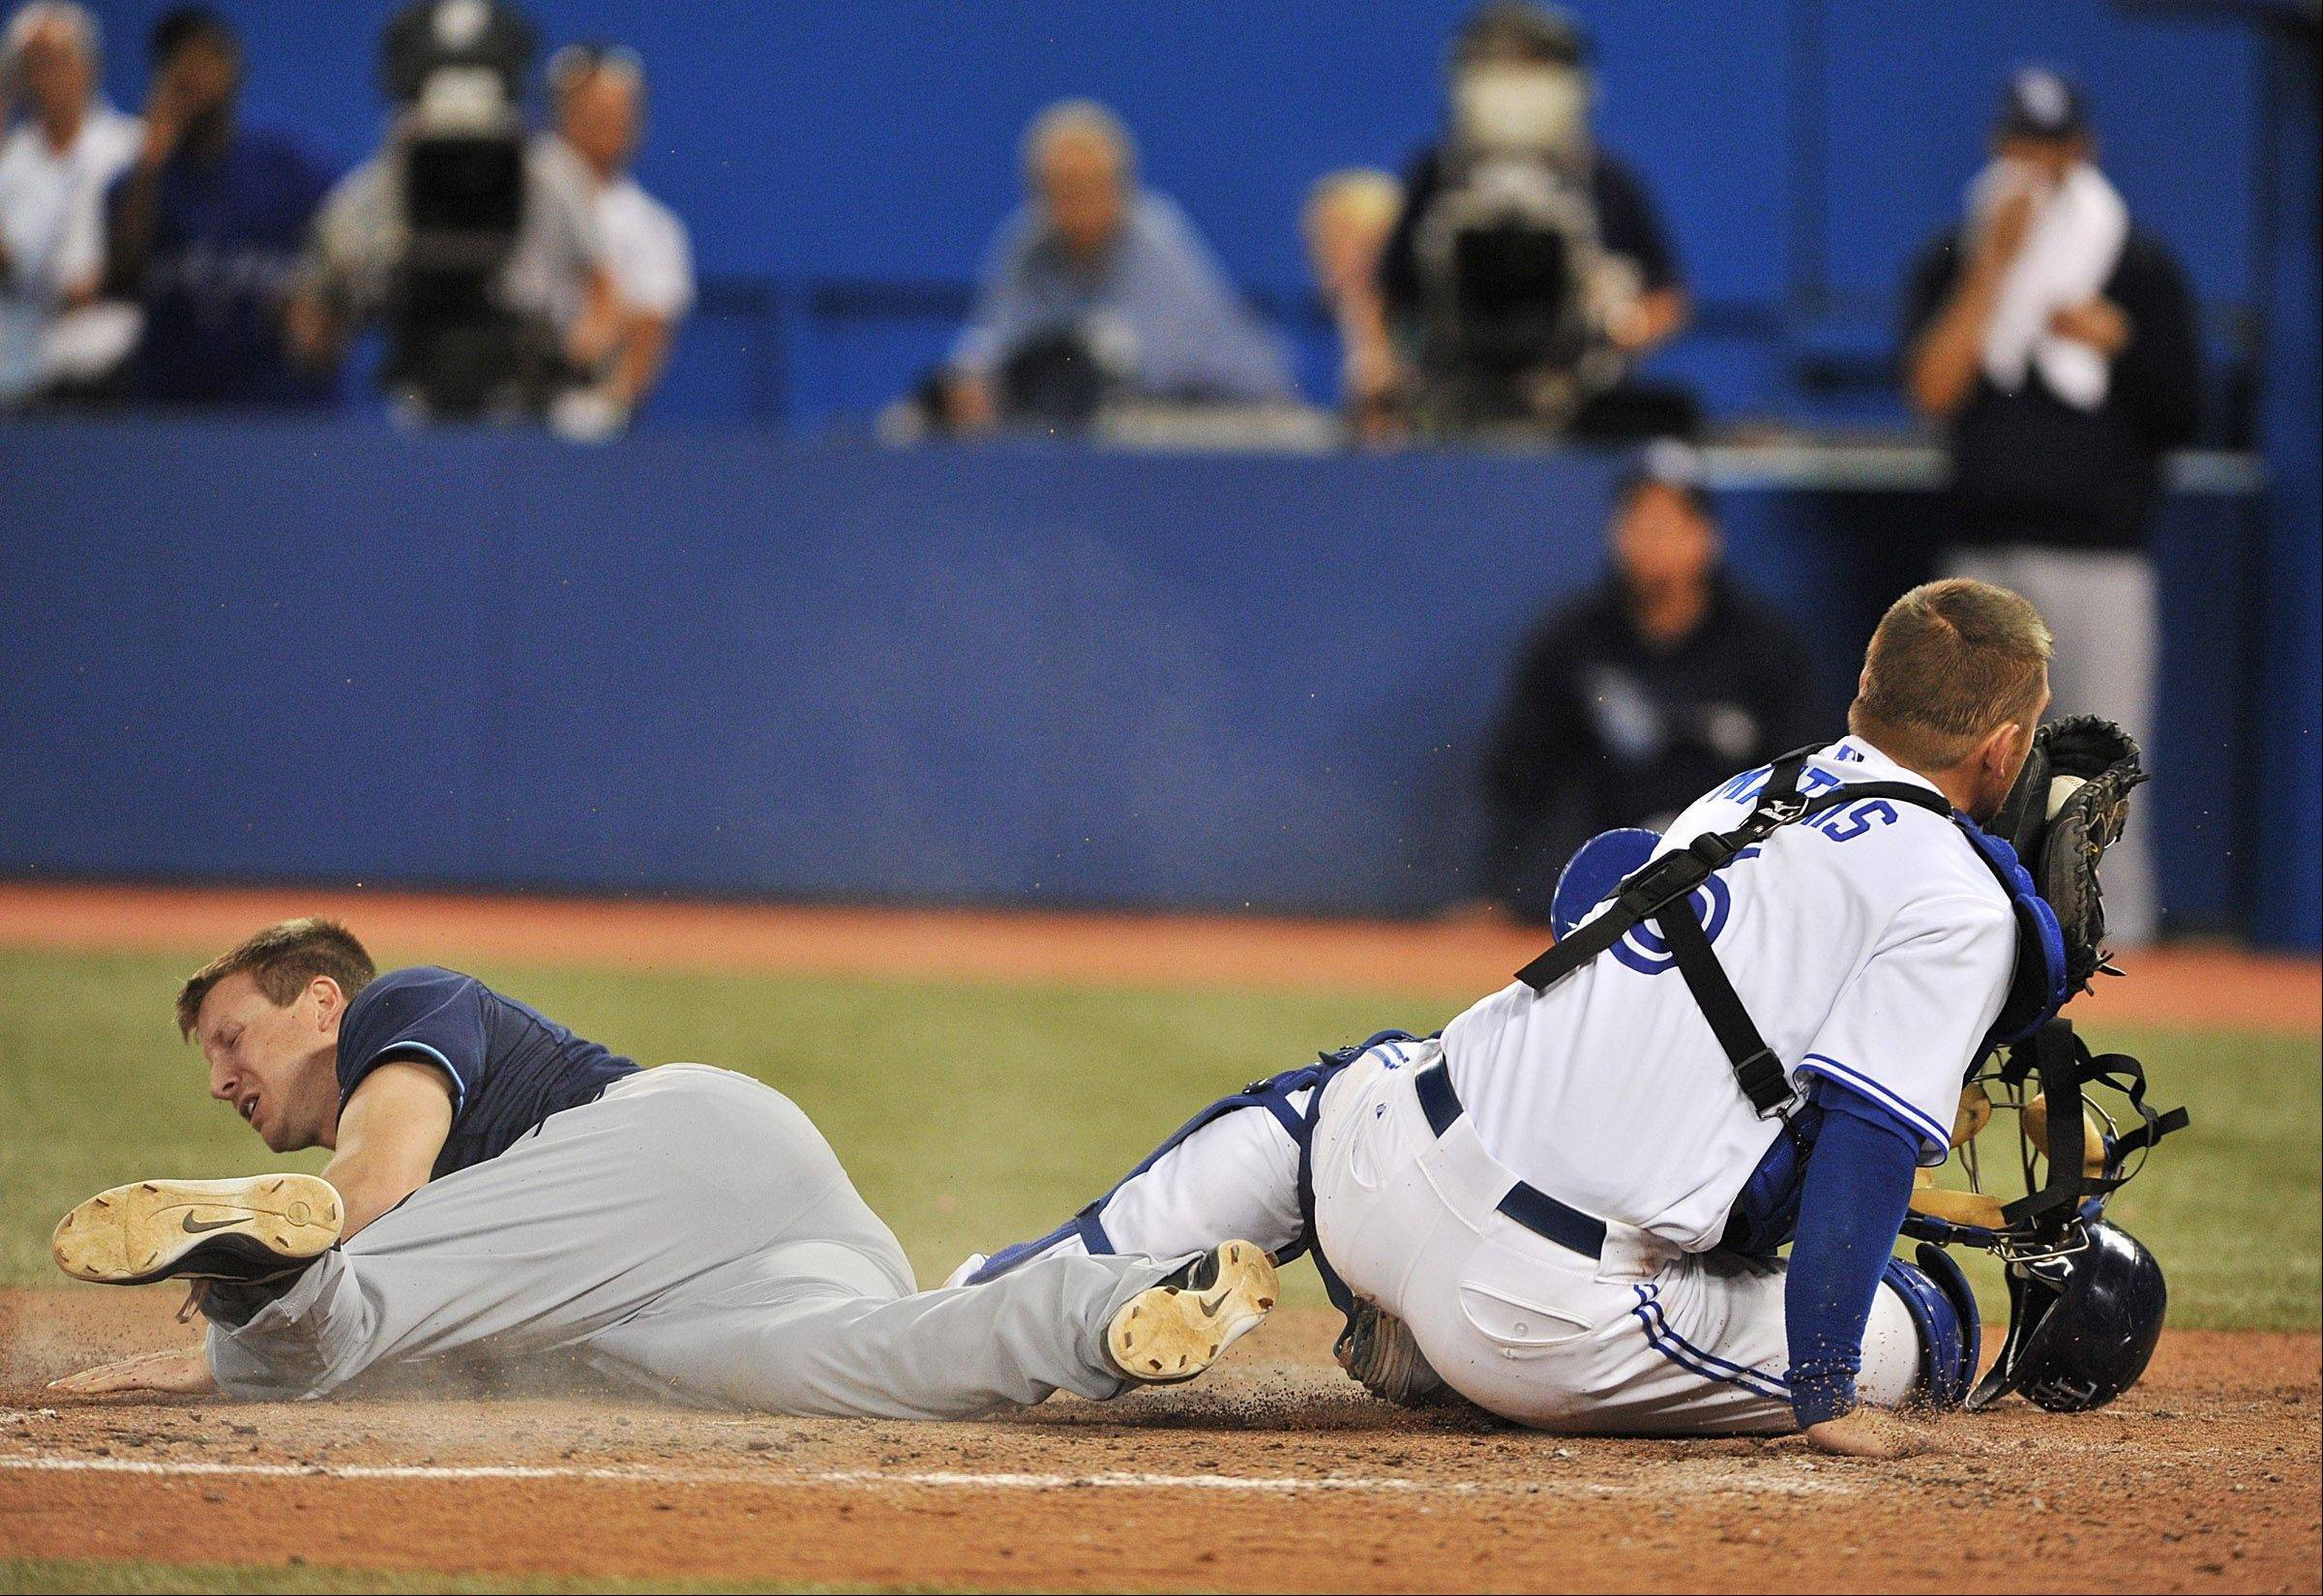 The Rays' Elliot Johnson, left, is laid out by Blue Jays catcher Jeff Mathis after attempting to score in the ninth inning Friday in Toronto.